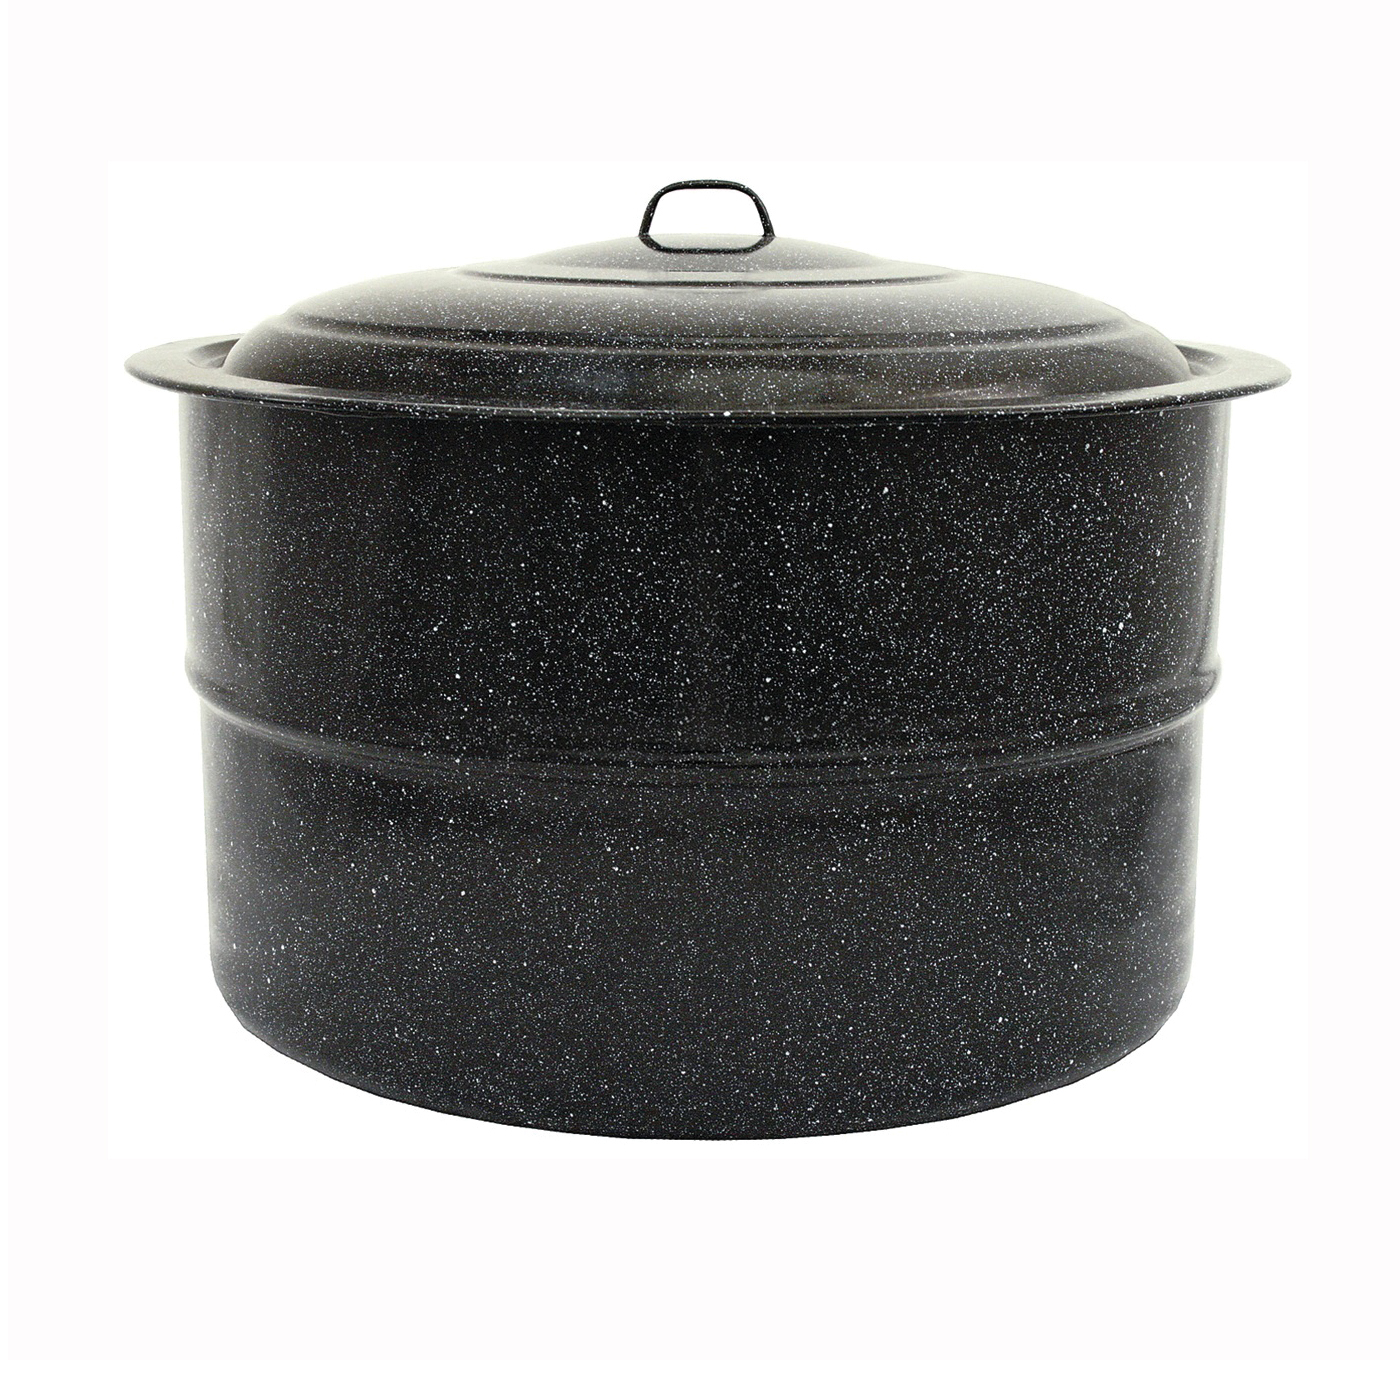 Picture of Granite Ware F0709-2 Canner, 33 qt Capacity, Steel, Porcelain Enamel-Coated